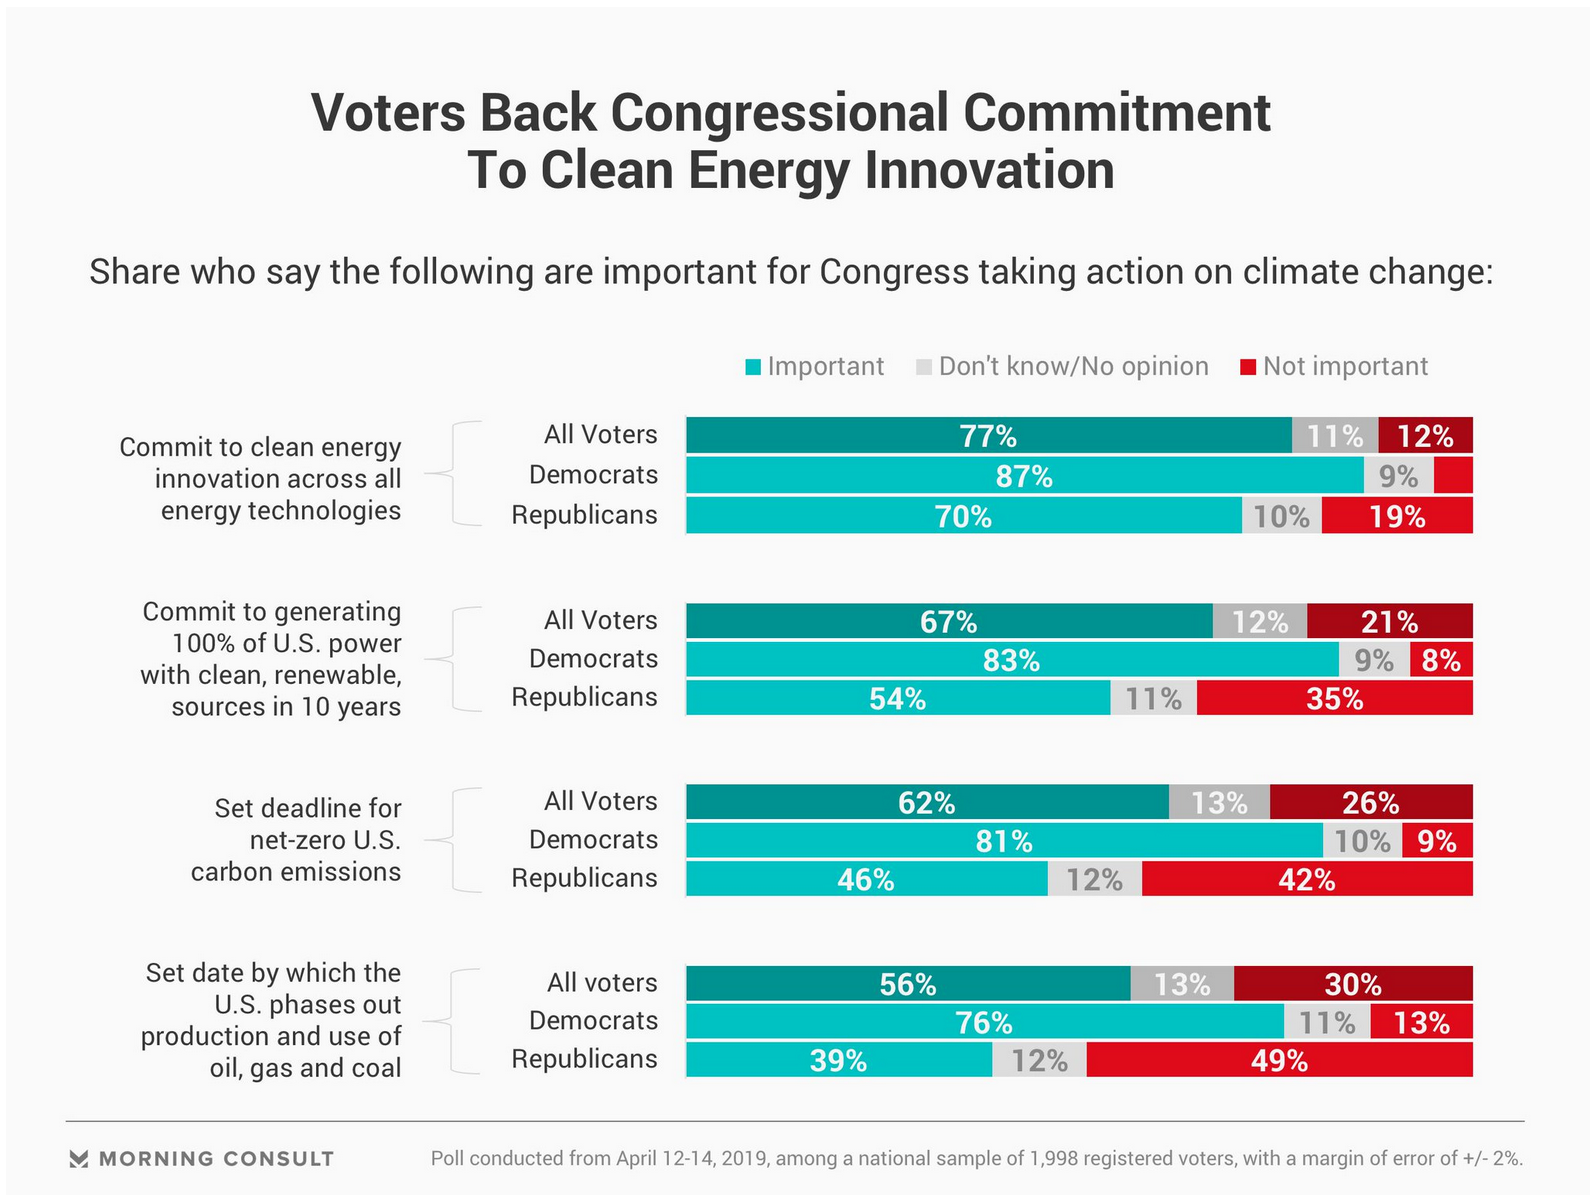 two thirds of American voters demand 100% renewable energy by 2030